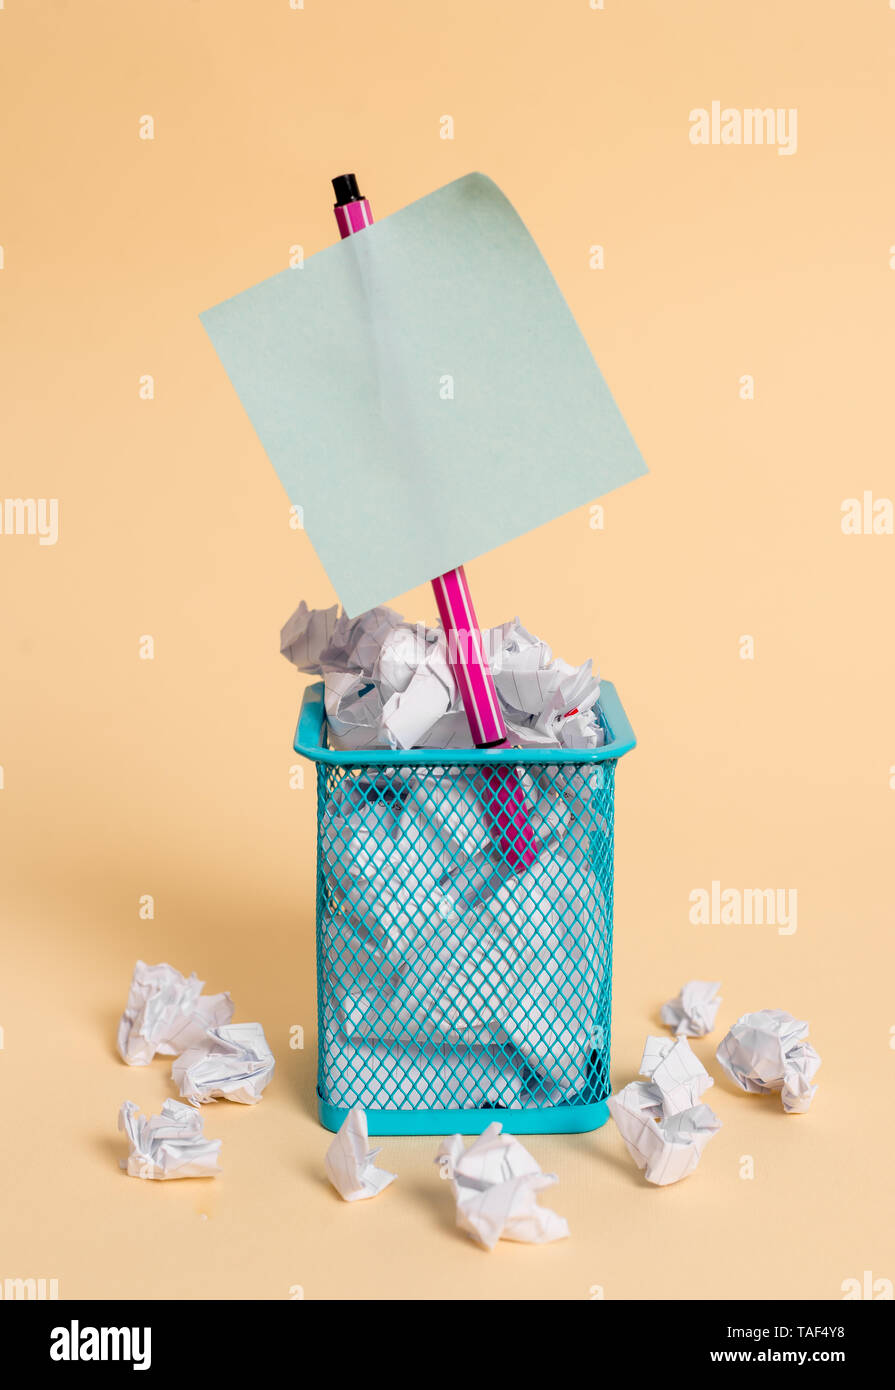 crumpled paper trash and stationary with note paper placed in the trash can - Stock Image